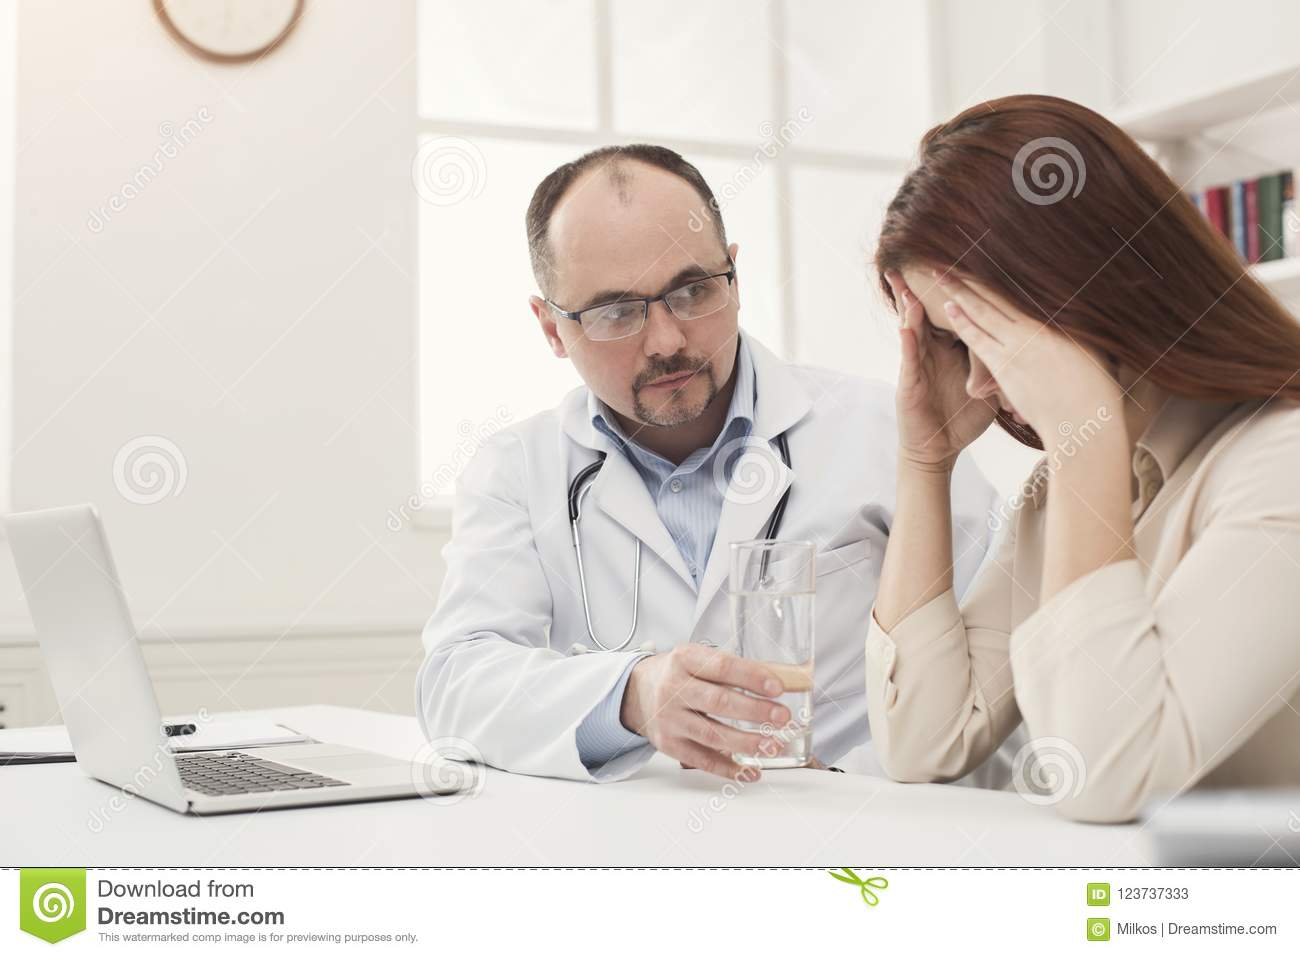 Doctor consulting woman in hospital